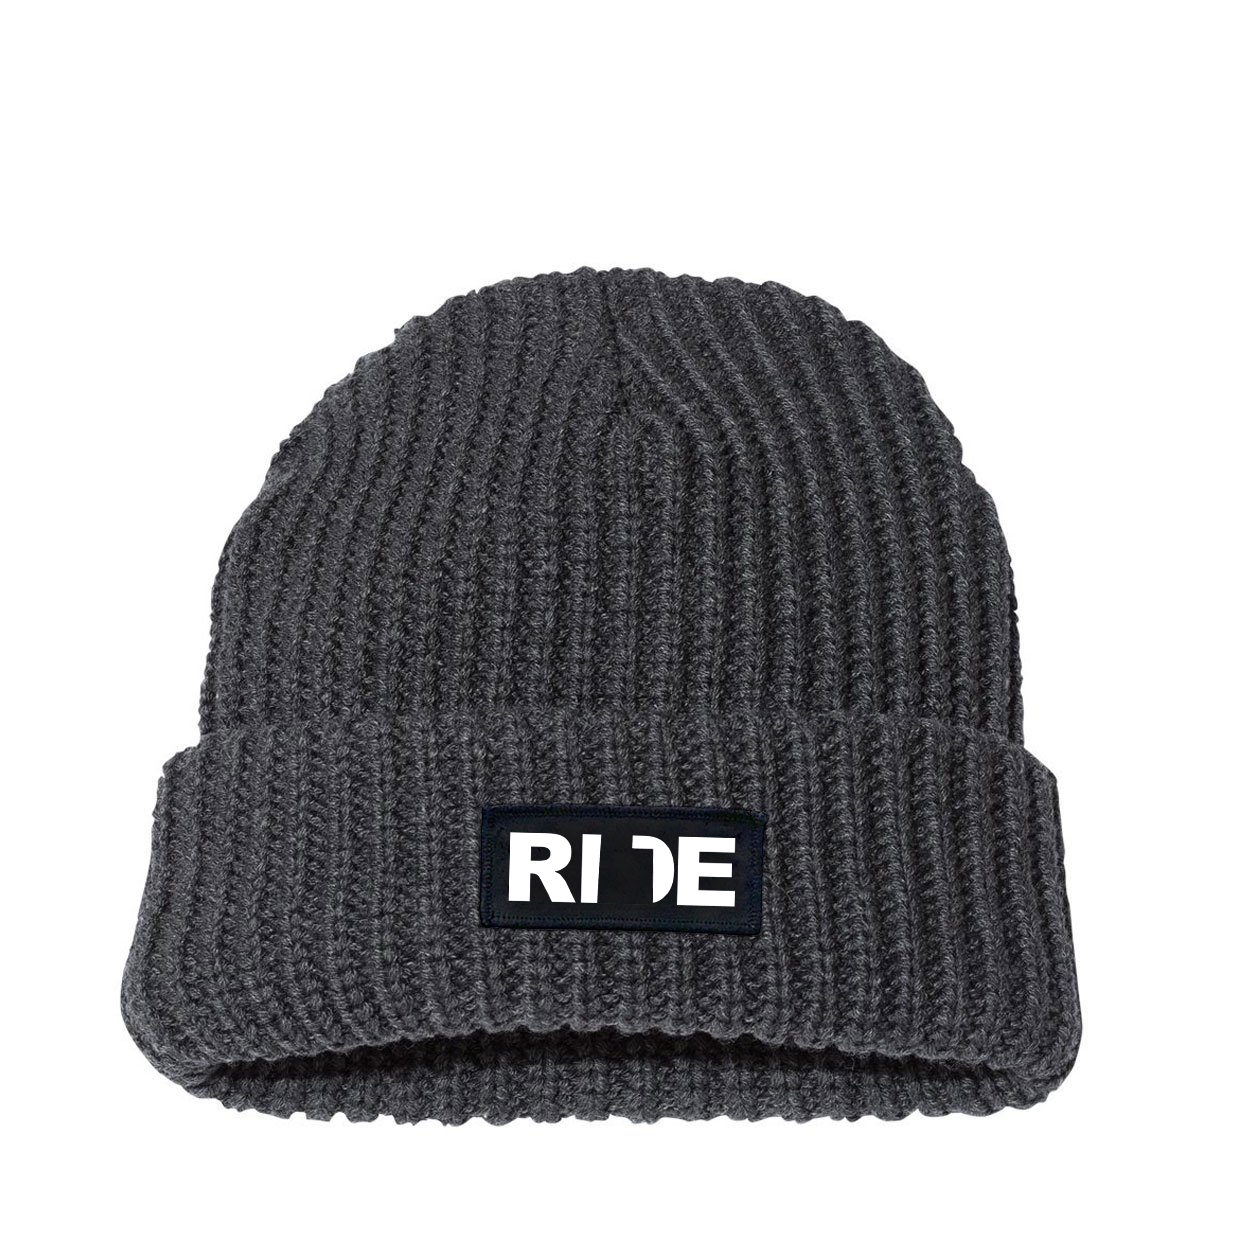 Ride Utah Night Out Woven Patch Roll Up Jumbo Chunky Knit Beanie Charcoal (White Logo)